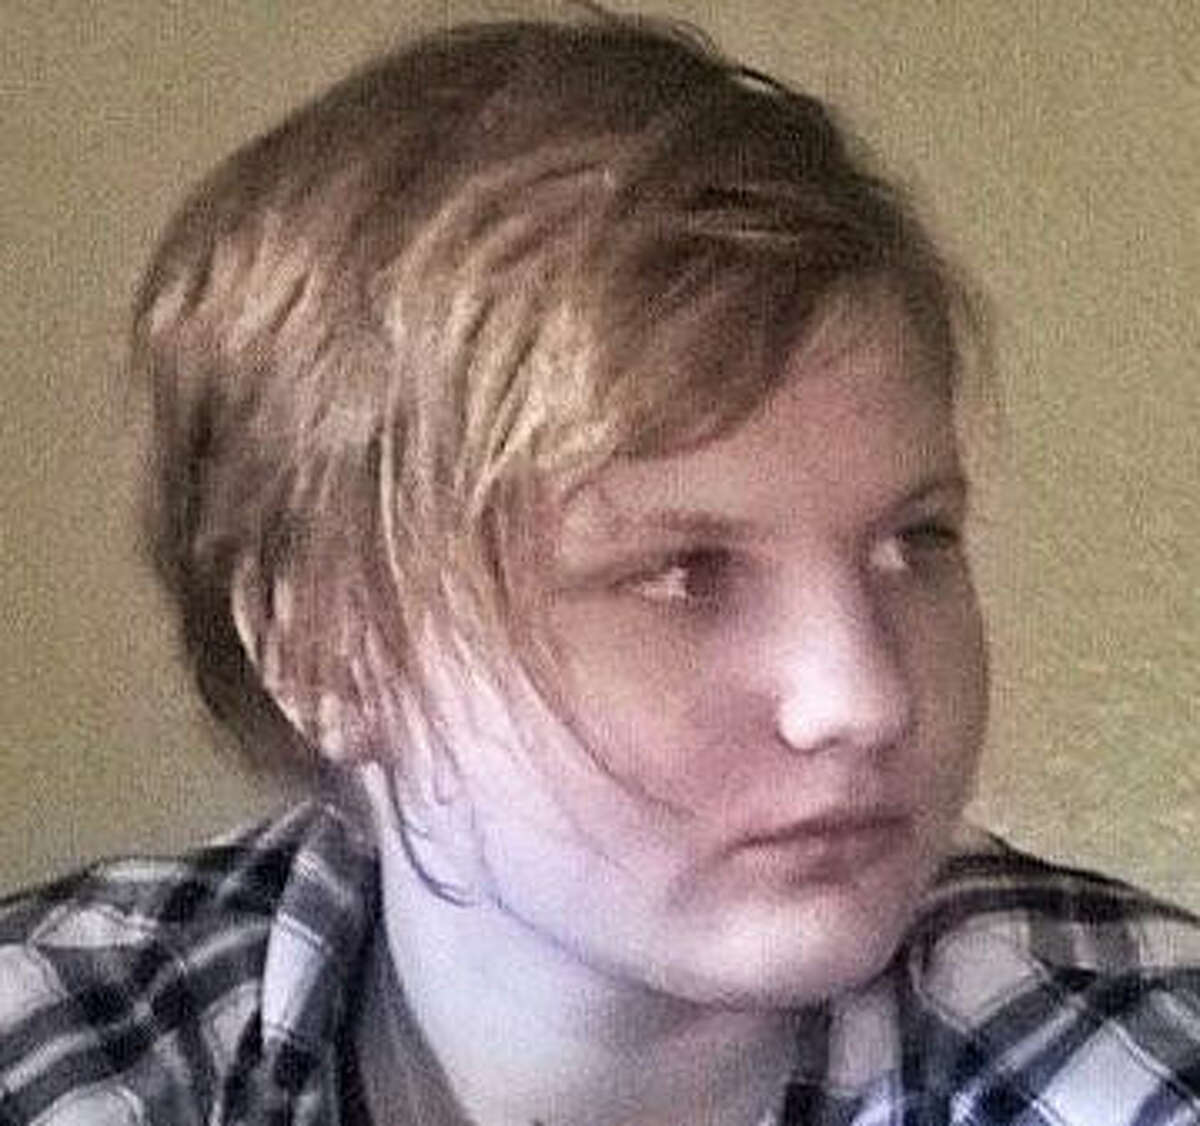 Texas Equusearch volunteers searching for Abigail English, 15, of Shoreacres, found a body on Saturday, April 23, 2016, but could not confirm the identity. (Texas Equusearch)